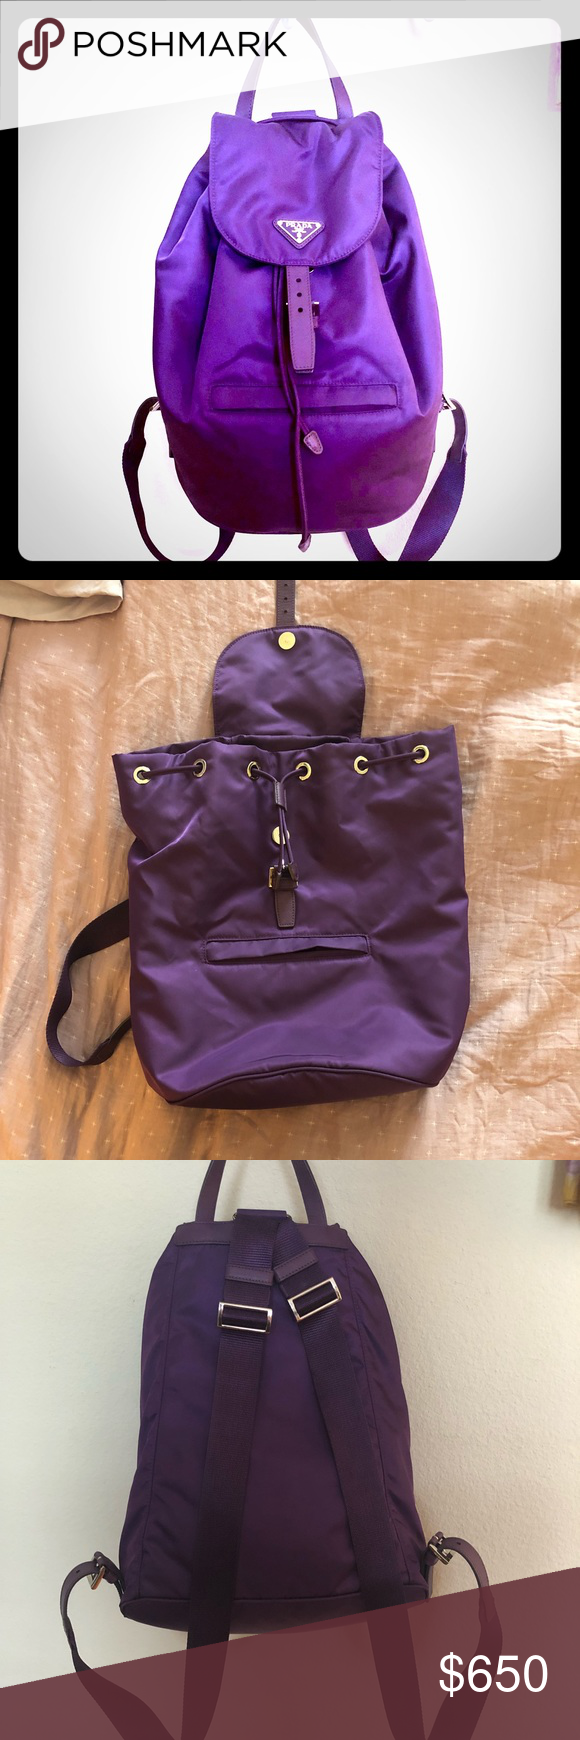 4a42f8d4cea142 ... norway prada vela medium backpack in purple the color is so pretty. its  a bright ...